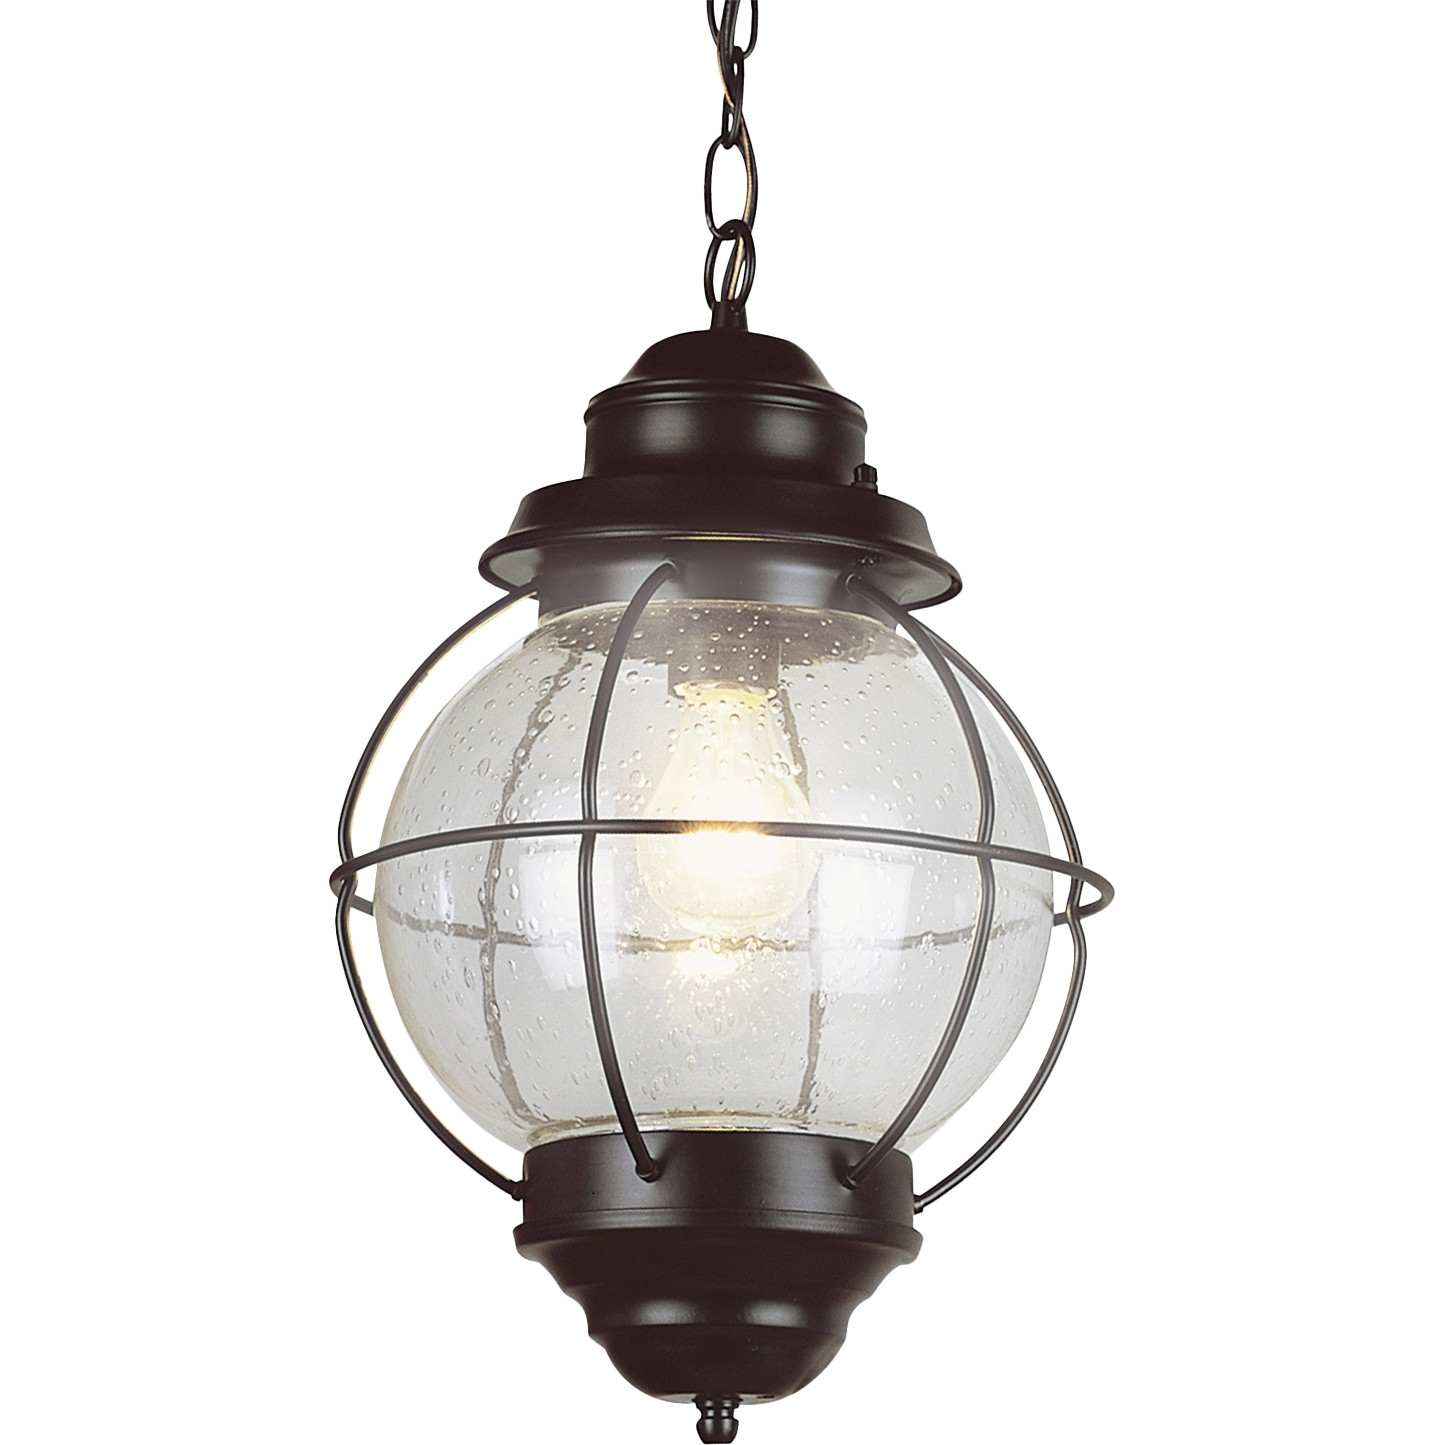 Outdoor Hanging Lights Wayfair 1 Light Lantern ~ Loversiq For Wayfair Outdoor Hanging Lighting Fixtures (View 10 of 15)